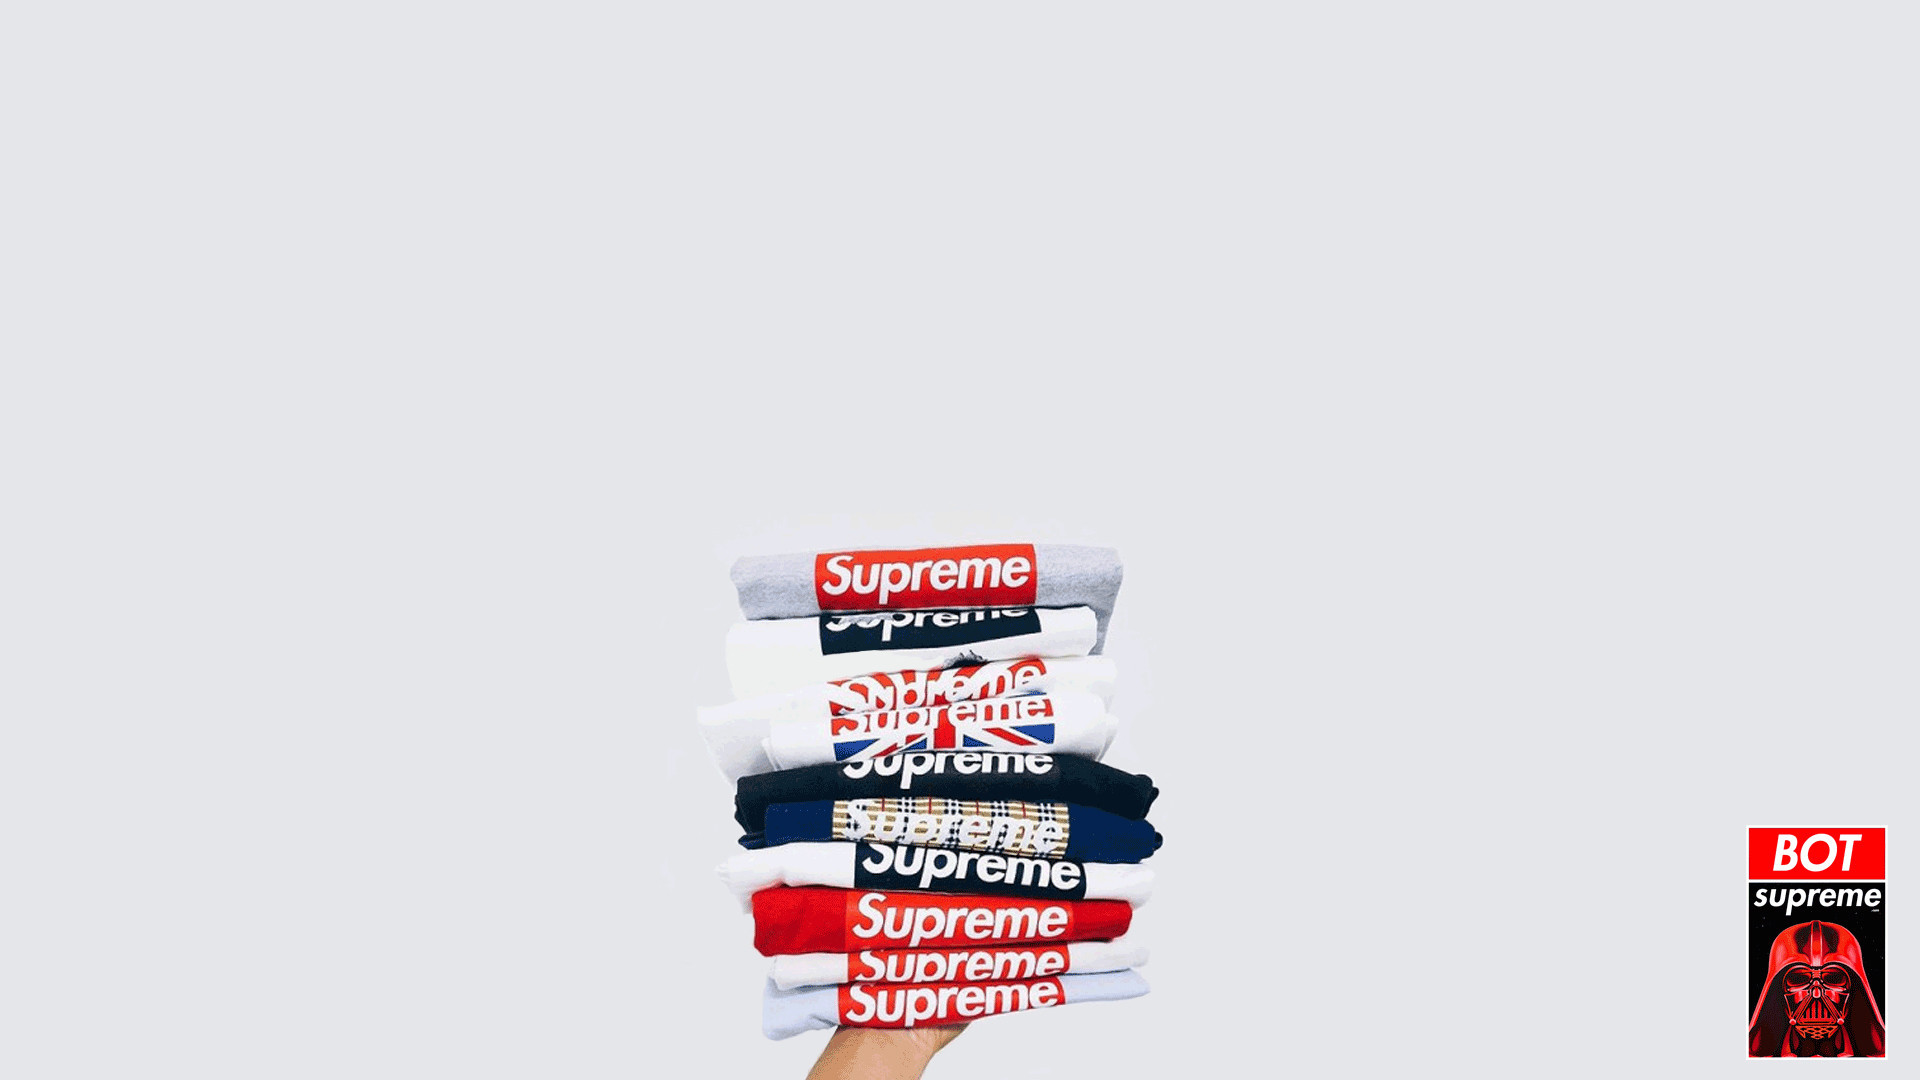 Supreme Gir Wallpaper 83 Images